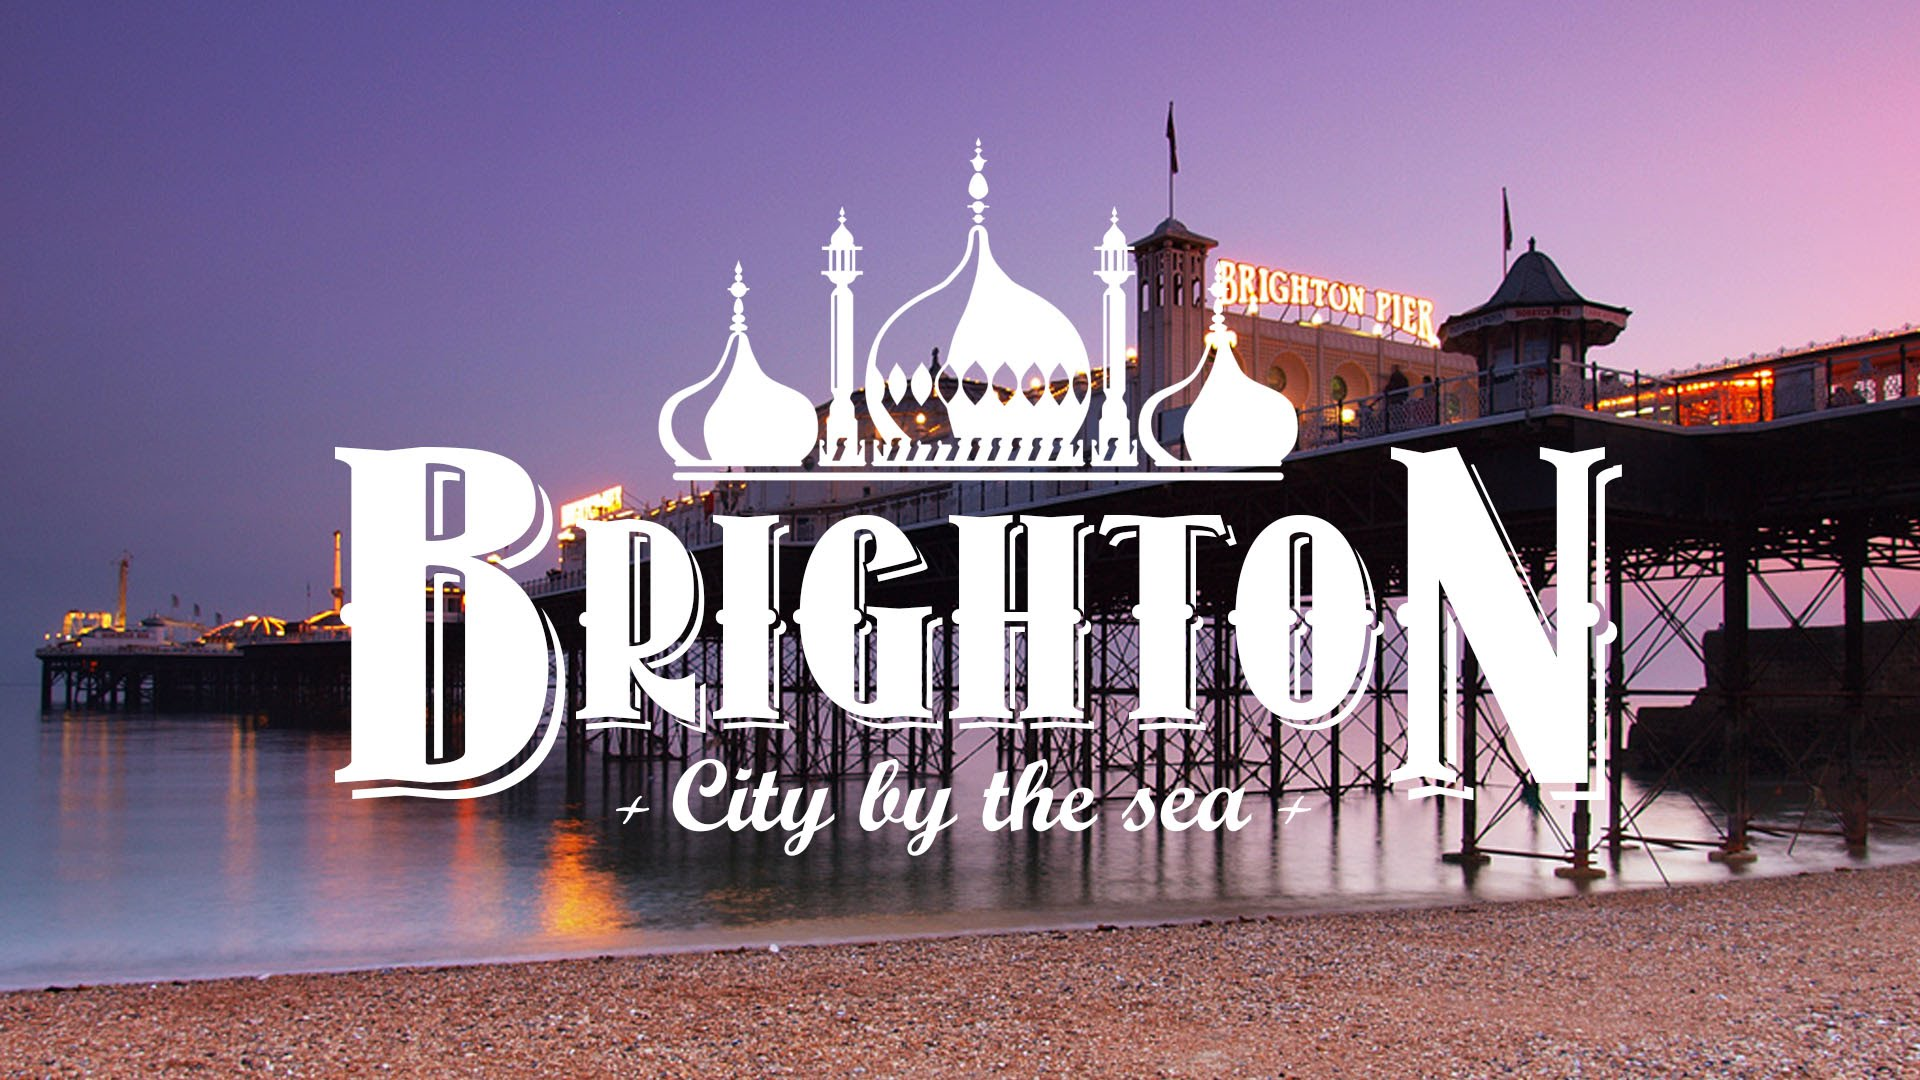 BRIGHTON CITY TOUR